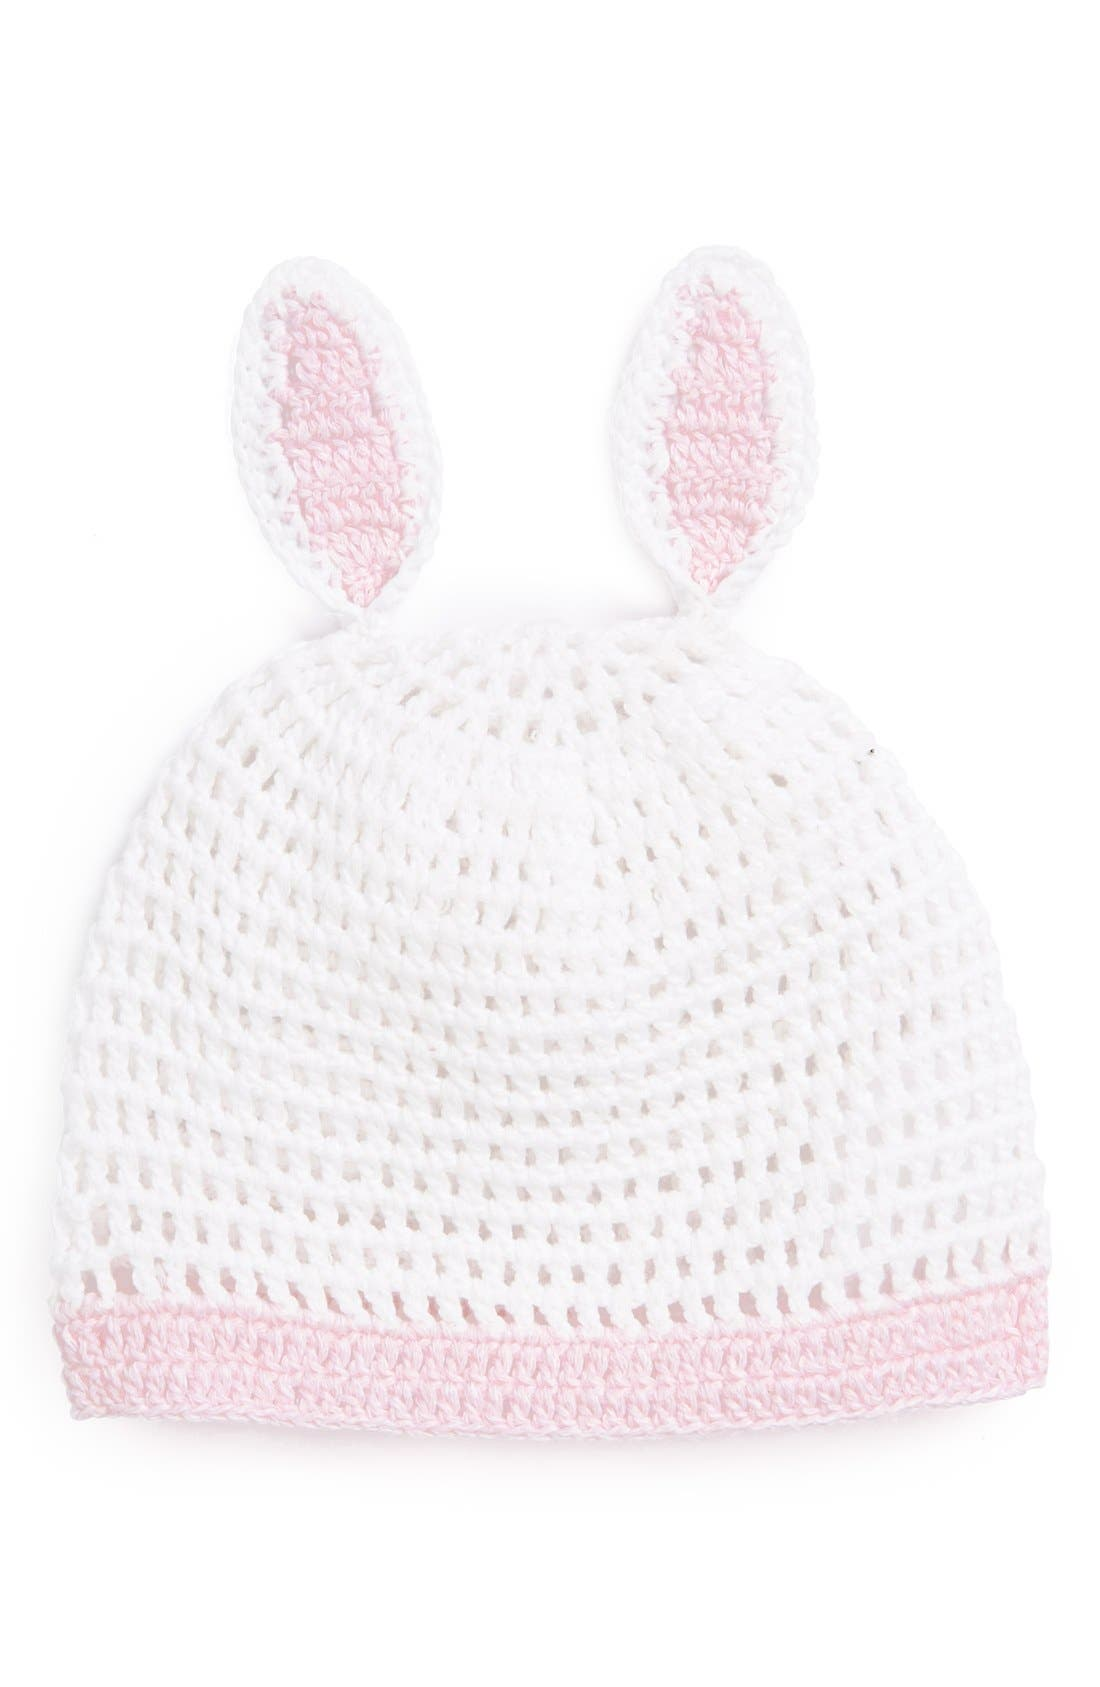 Alternate Image 1 Selected - Mud Pie 'Bunny' Crochet Hat (Baby Girls)